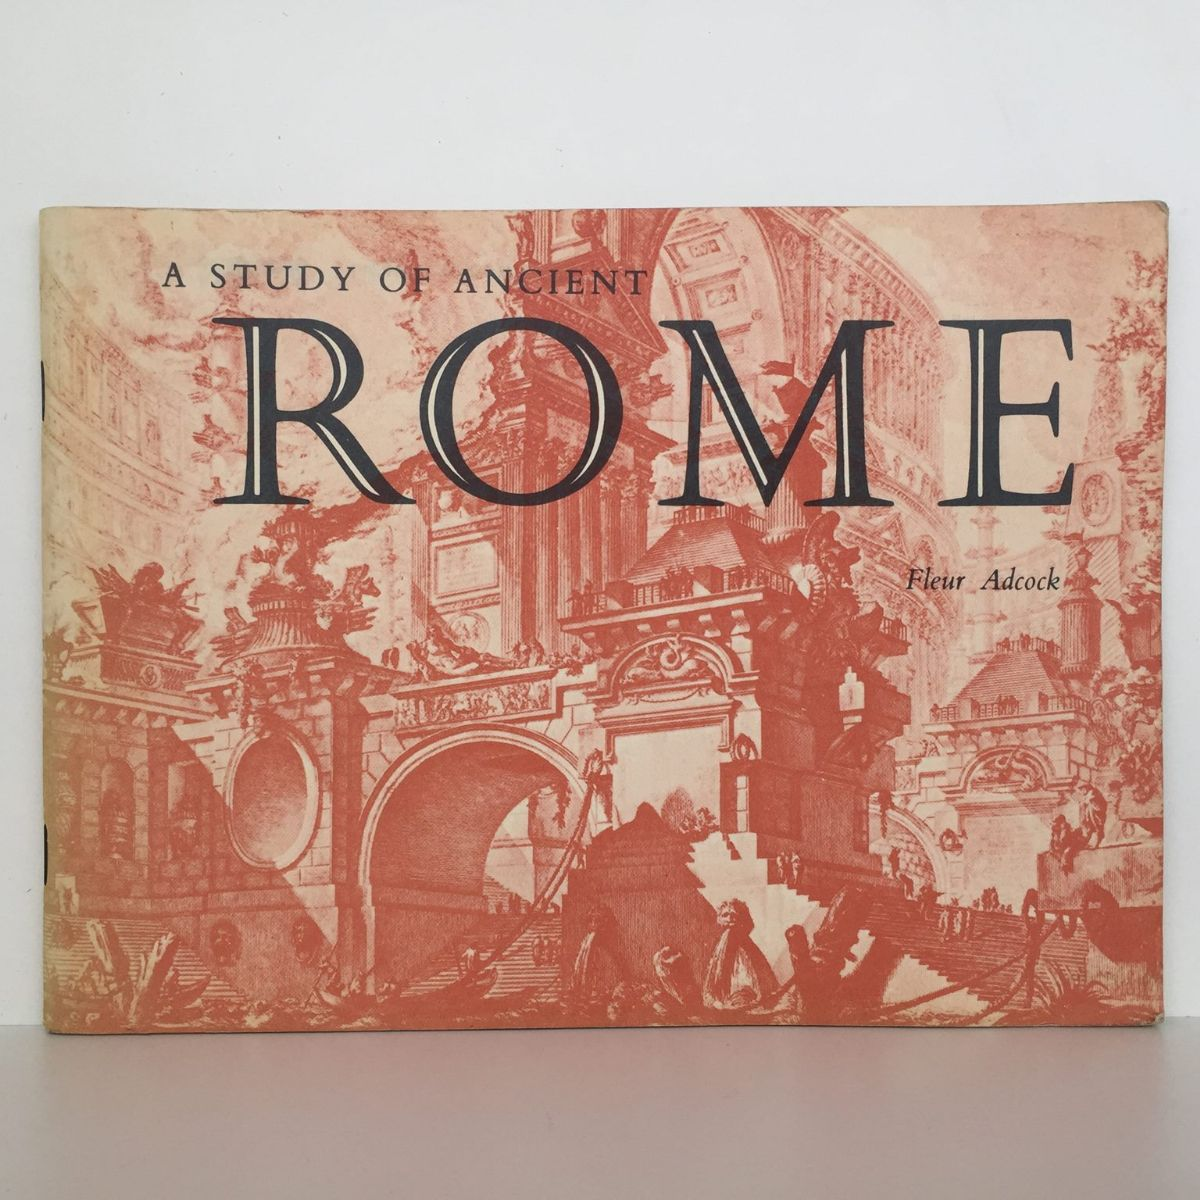 A Study of Ancient Rome